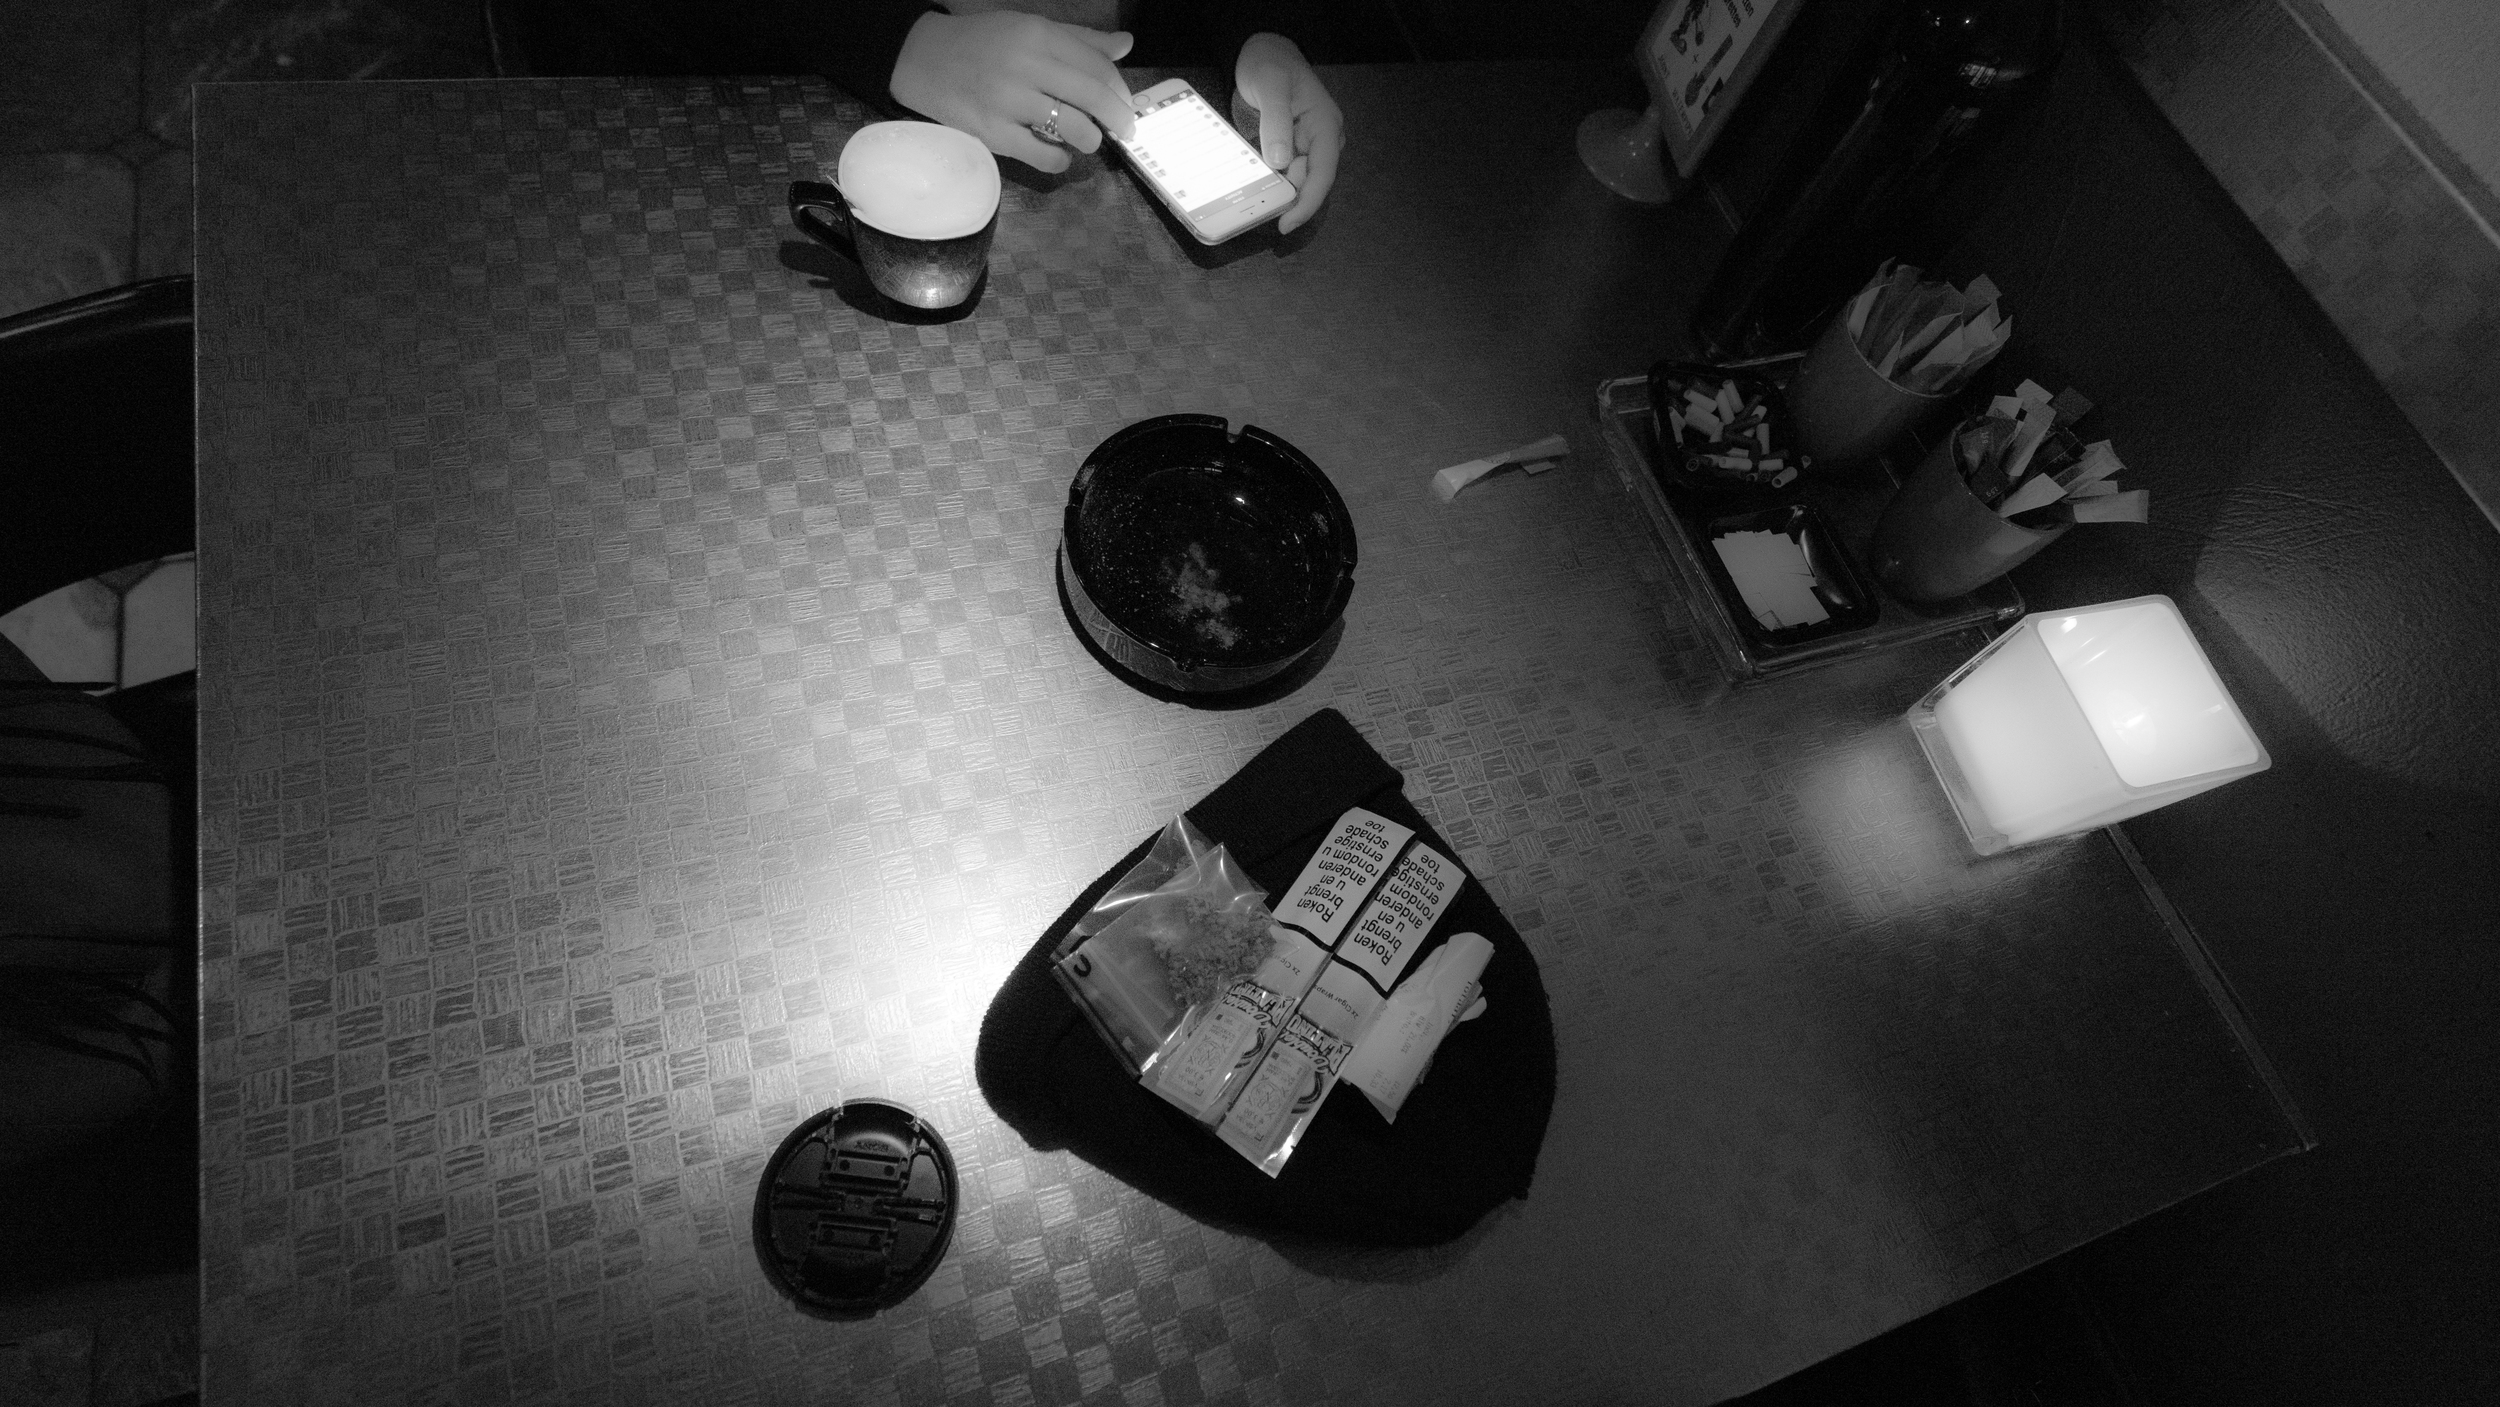 COFFEE SHOP HIGH TIMES // ONE OF OUR FAVORITE LOCAL SHOPS // IMAGE FOR MEETYOUTHERE.ME